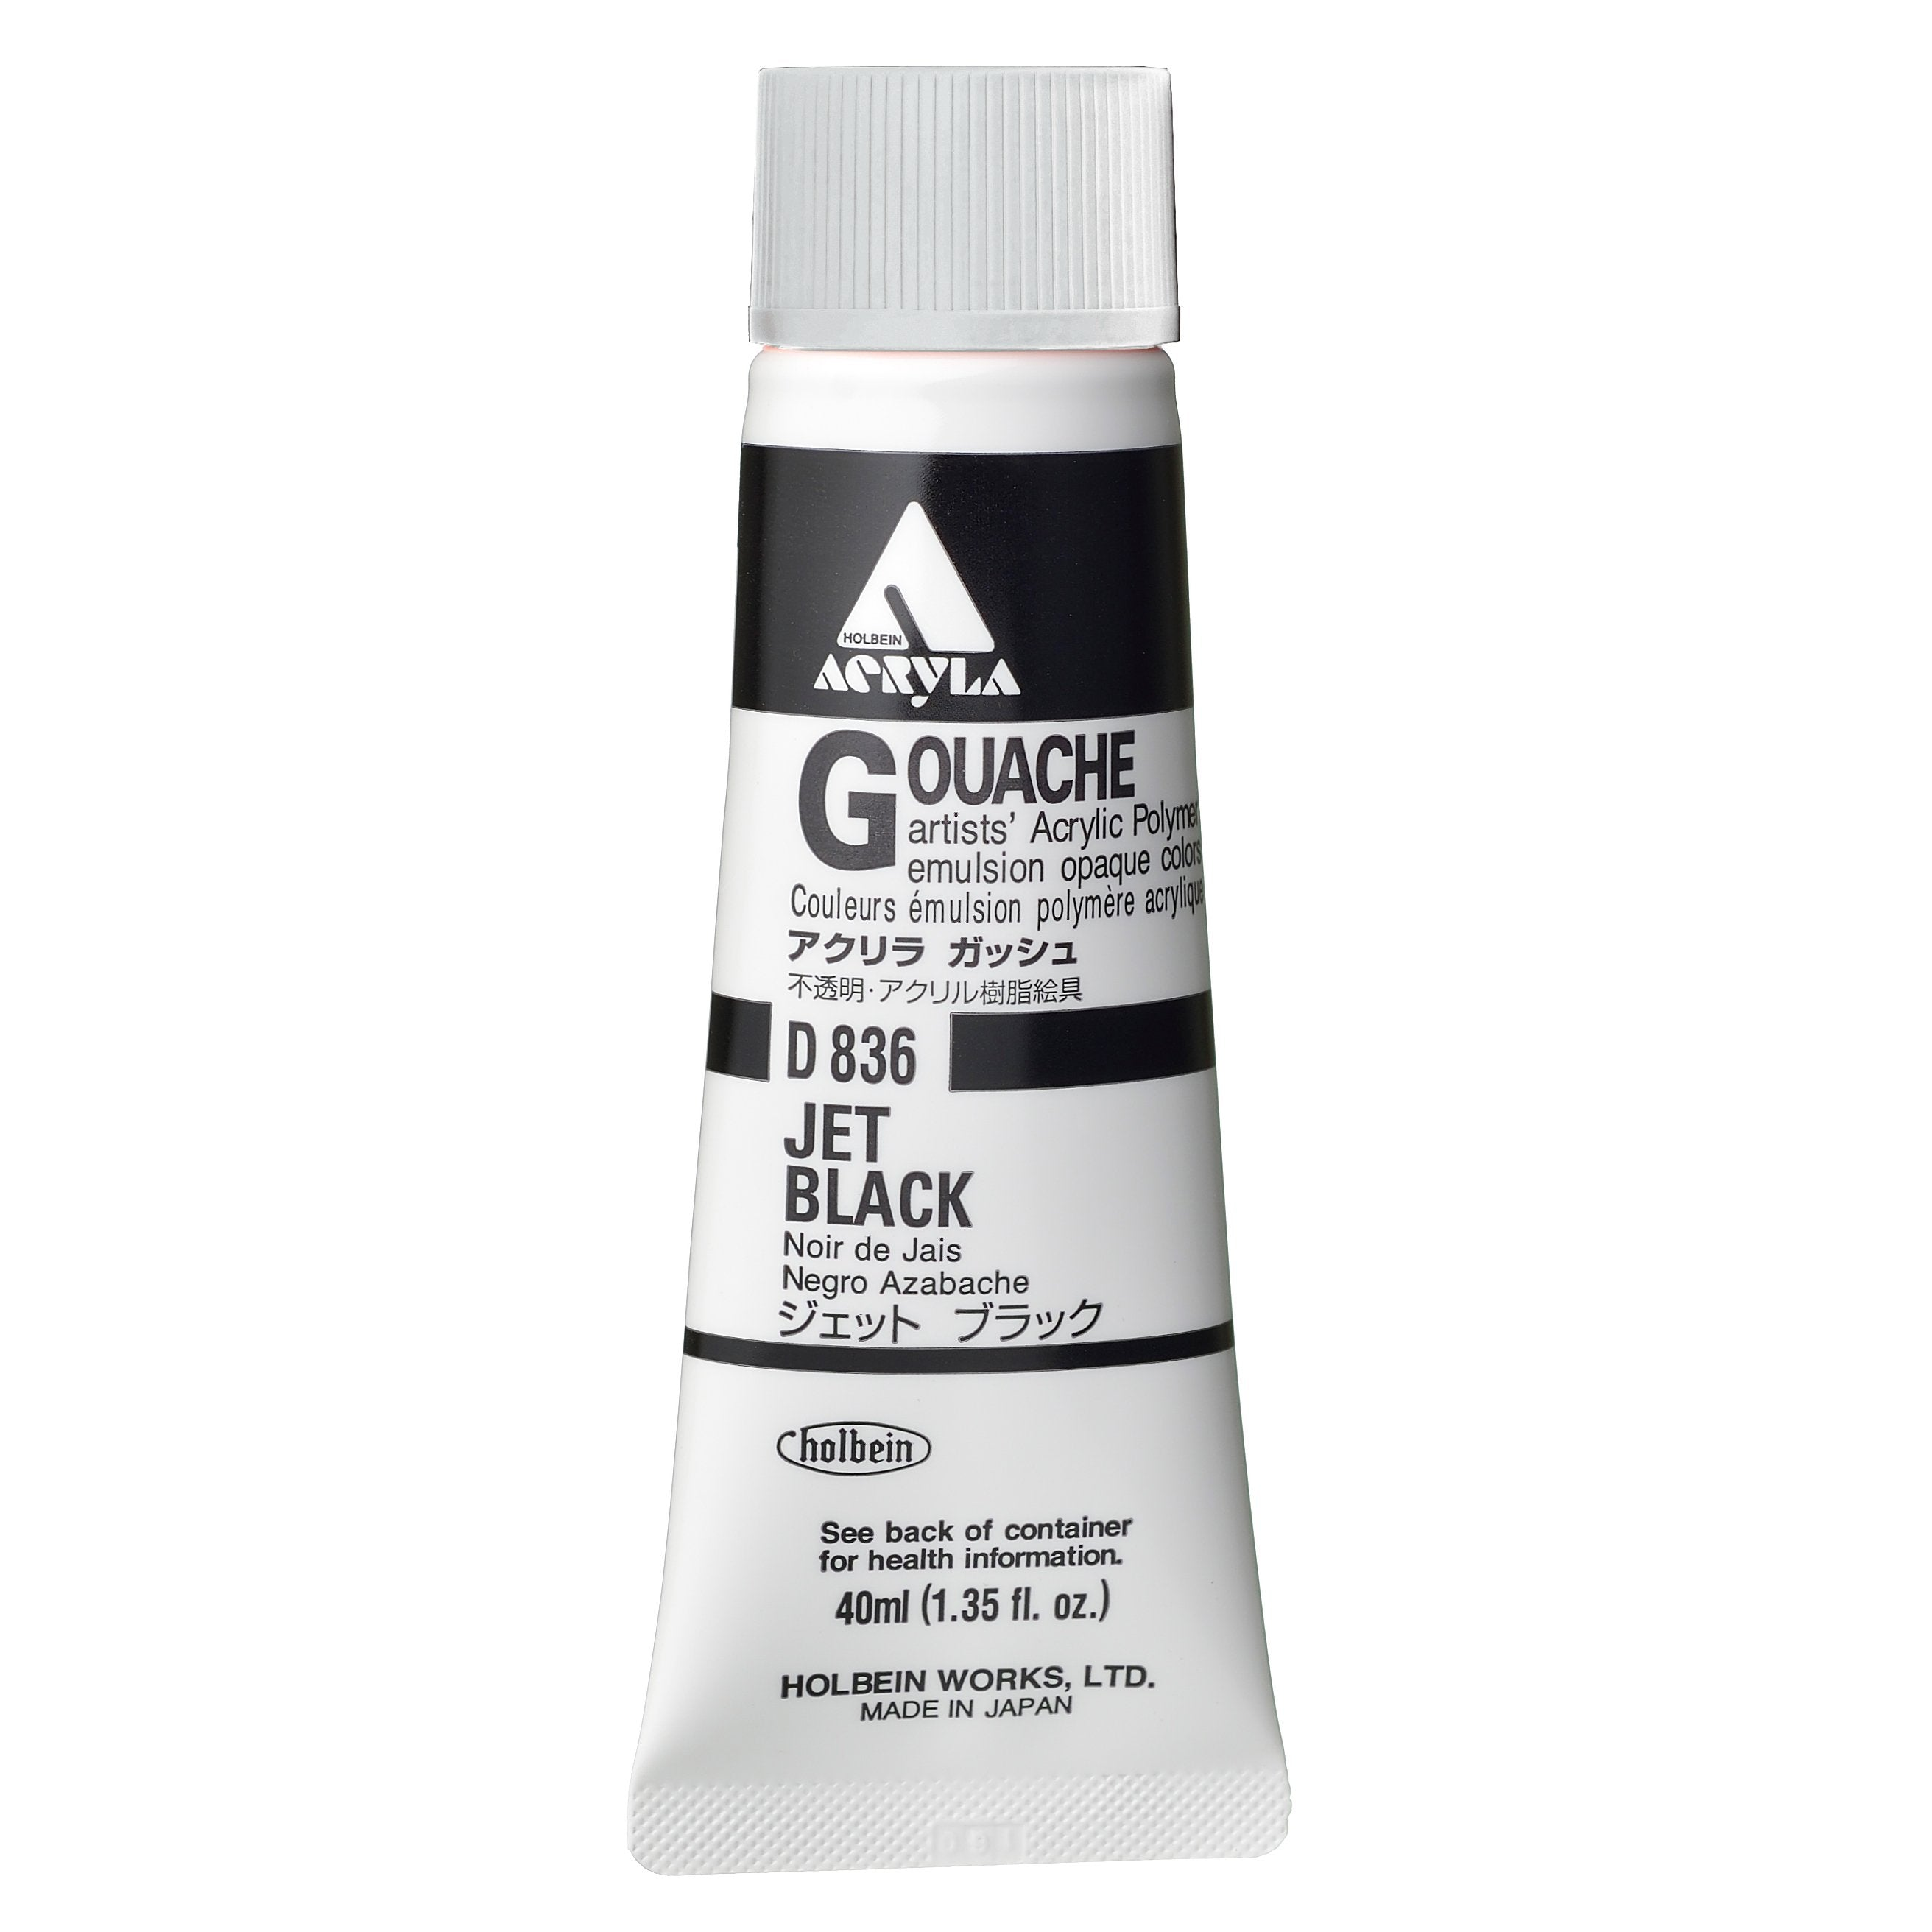 Holbein Acryla Gouache, 40ml, Lamp Black